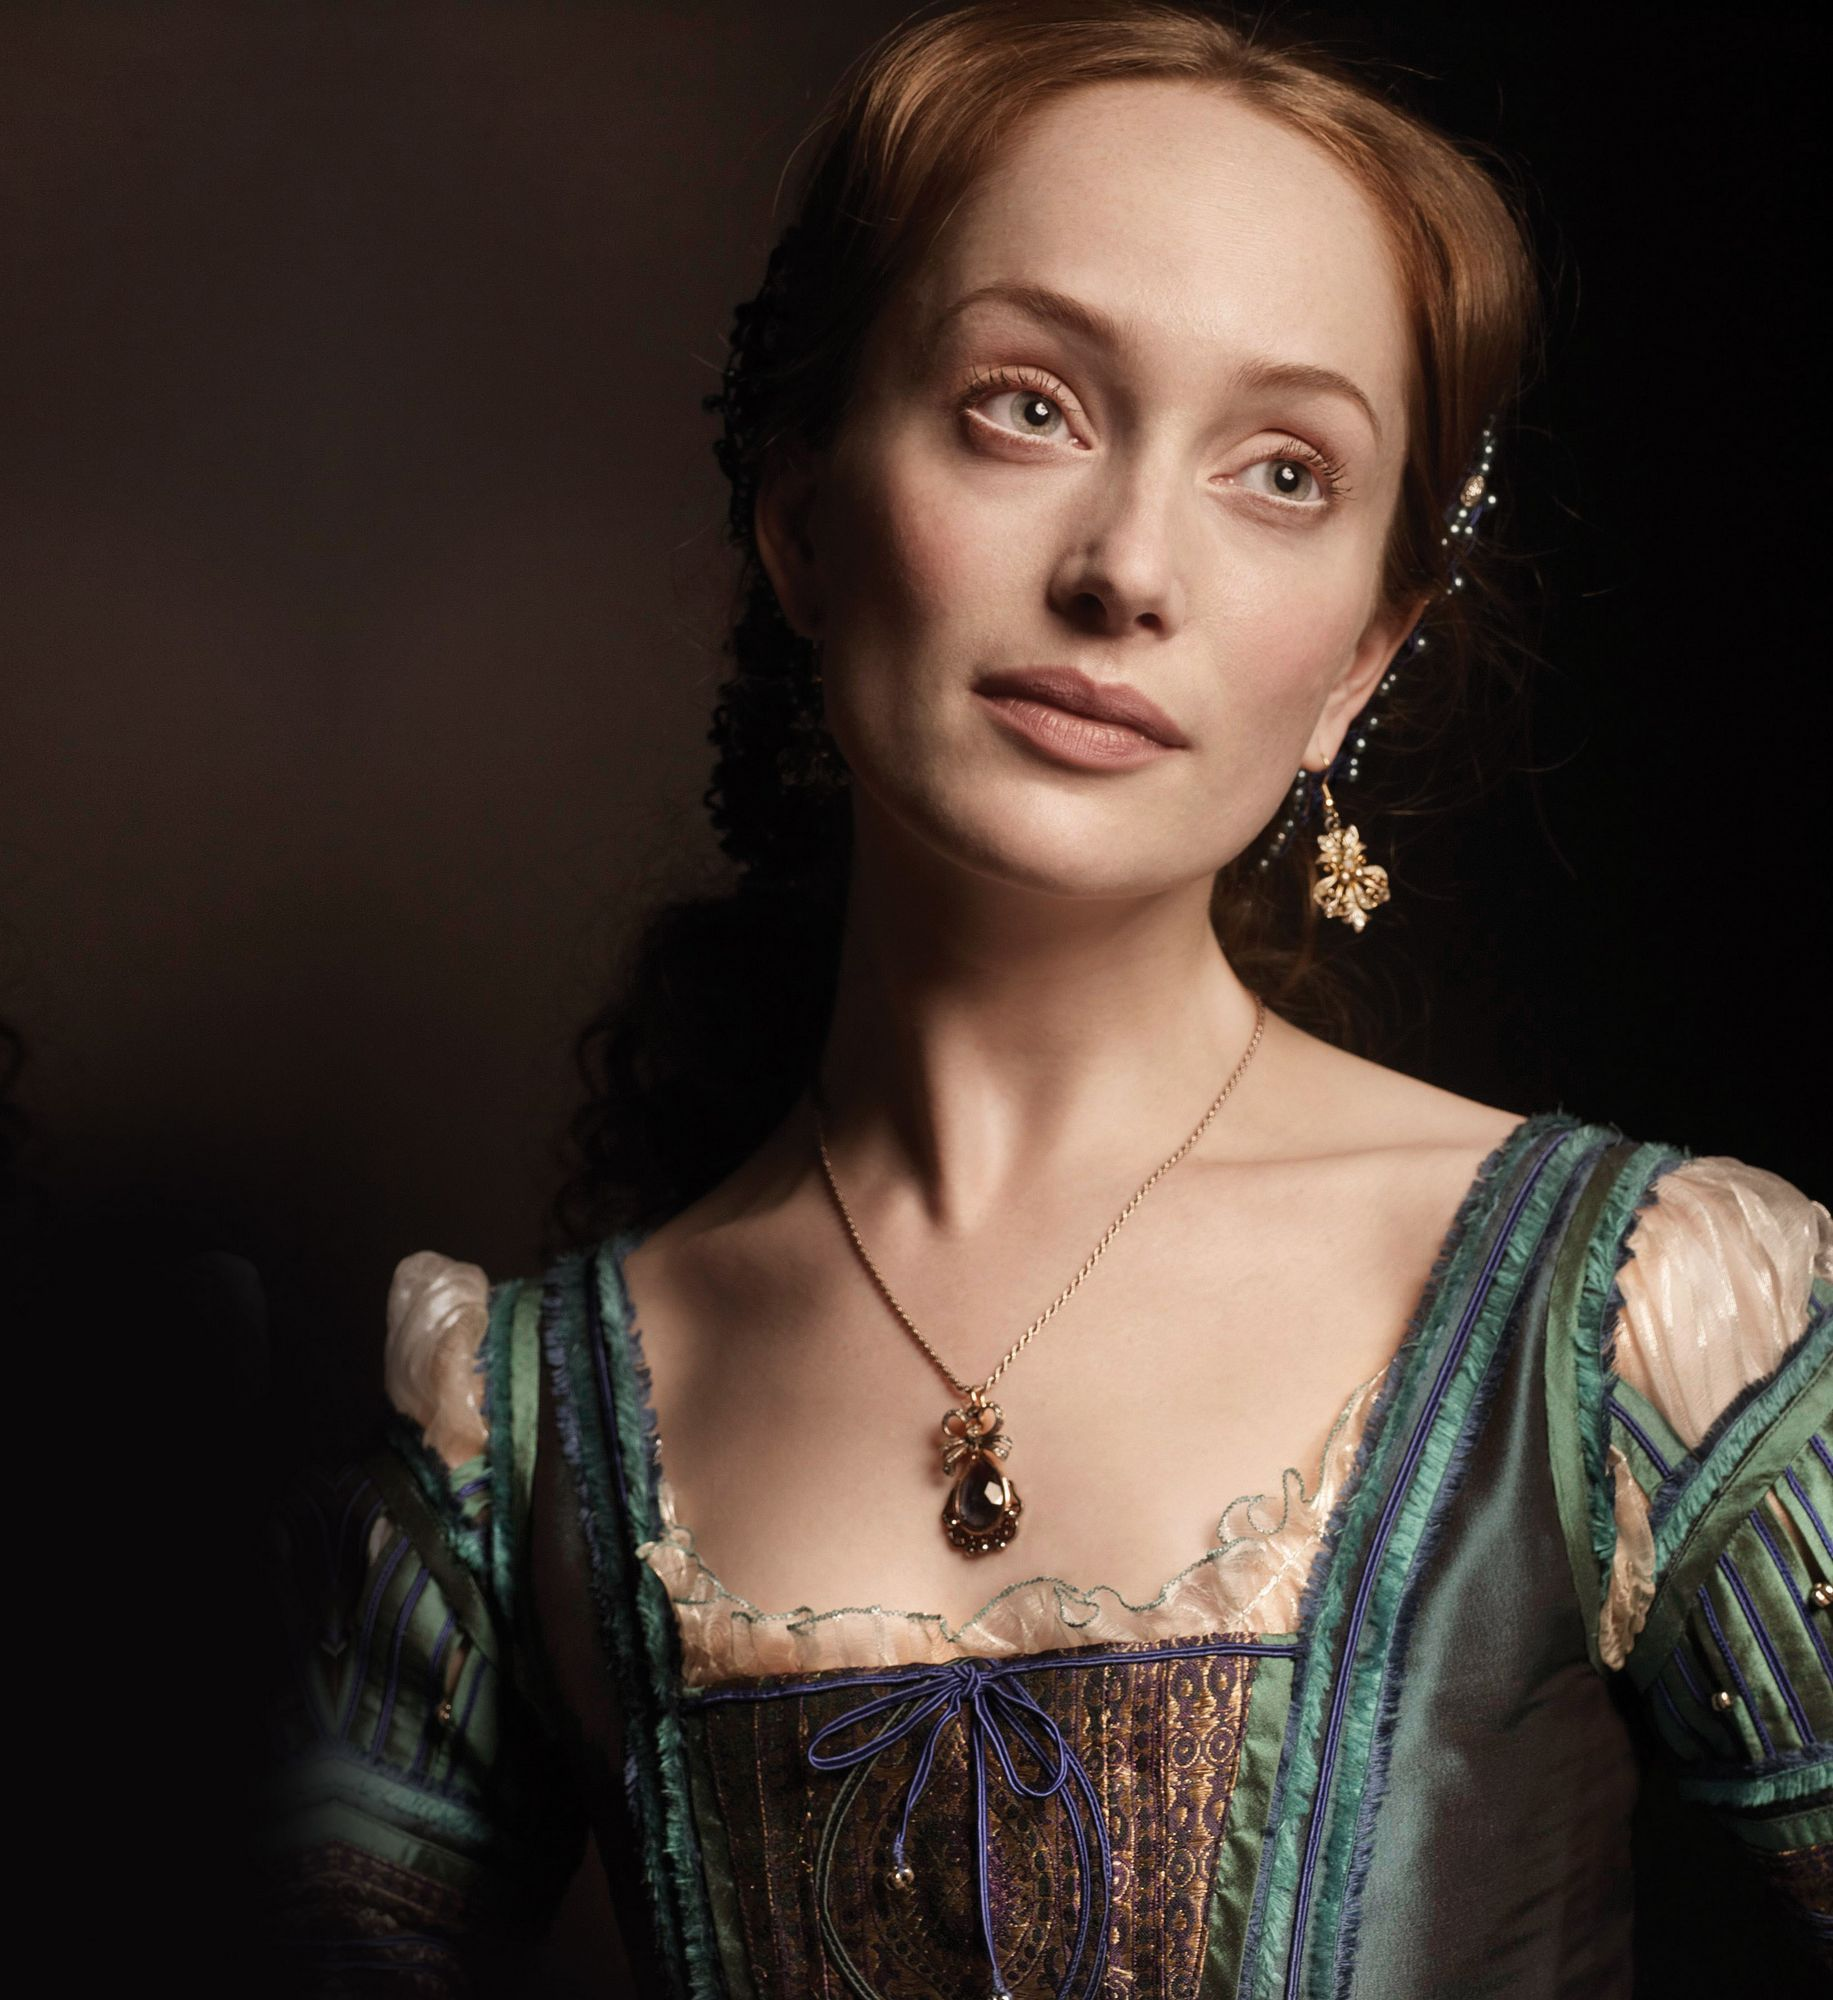 Lotte Verbeek as Geillis Duncan in Outlander ...... The real Geillis Duncane, persecuted witch of Scotland From the contemporary pamphlet Newes from Scotland, 1591, as reprinted in Pitcairn's Criminal Trials in Scotland, vol. 1, pt. 2, pp. 215-223. English.